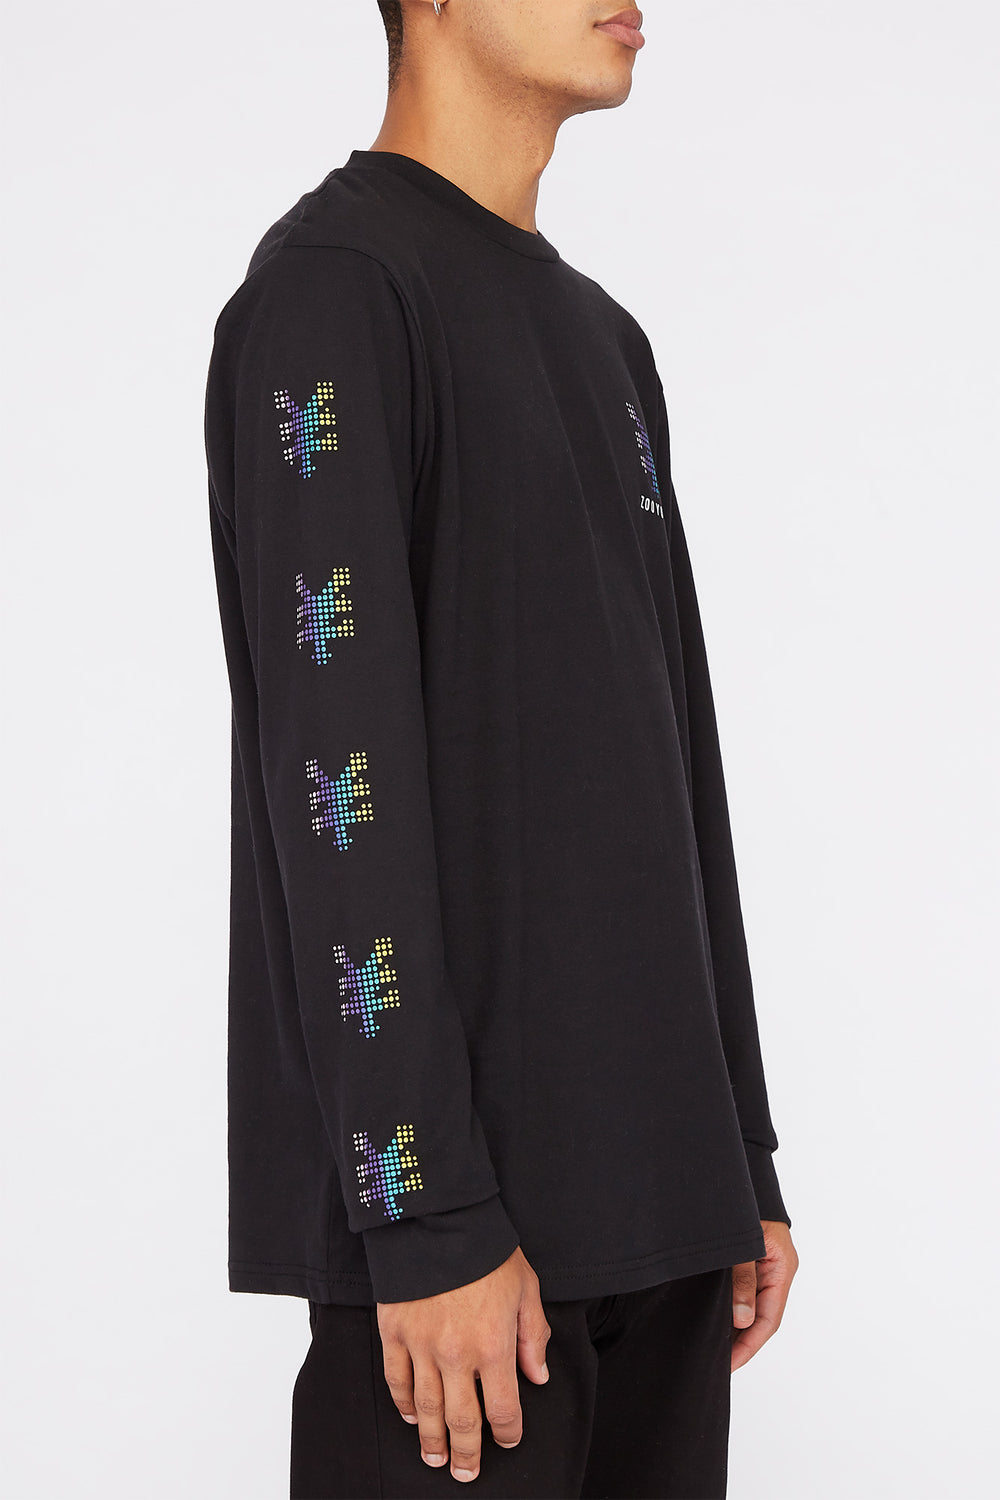 Zoo York Mens Rainbow Dots Long Sleeve Shirt Black